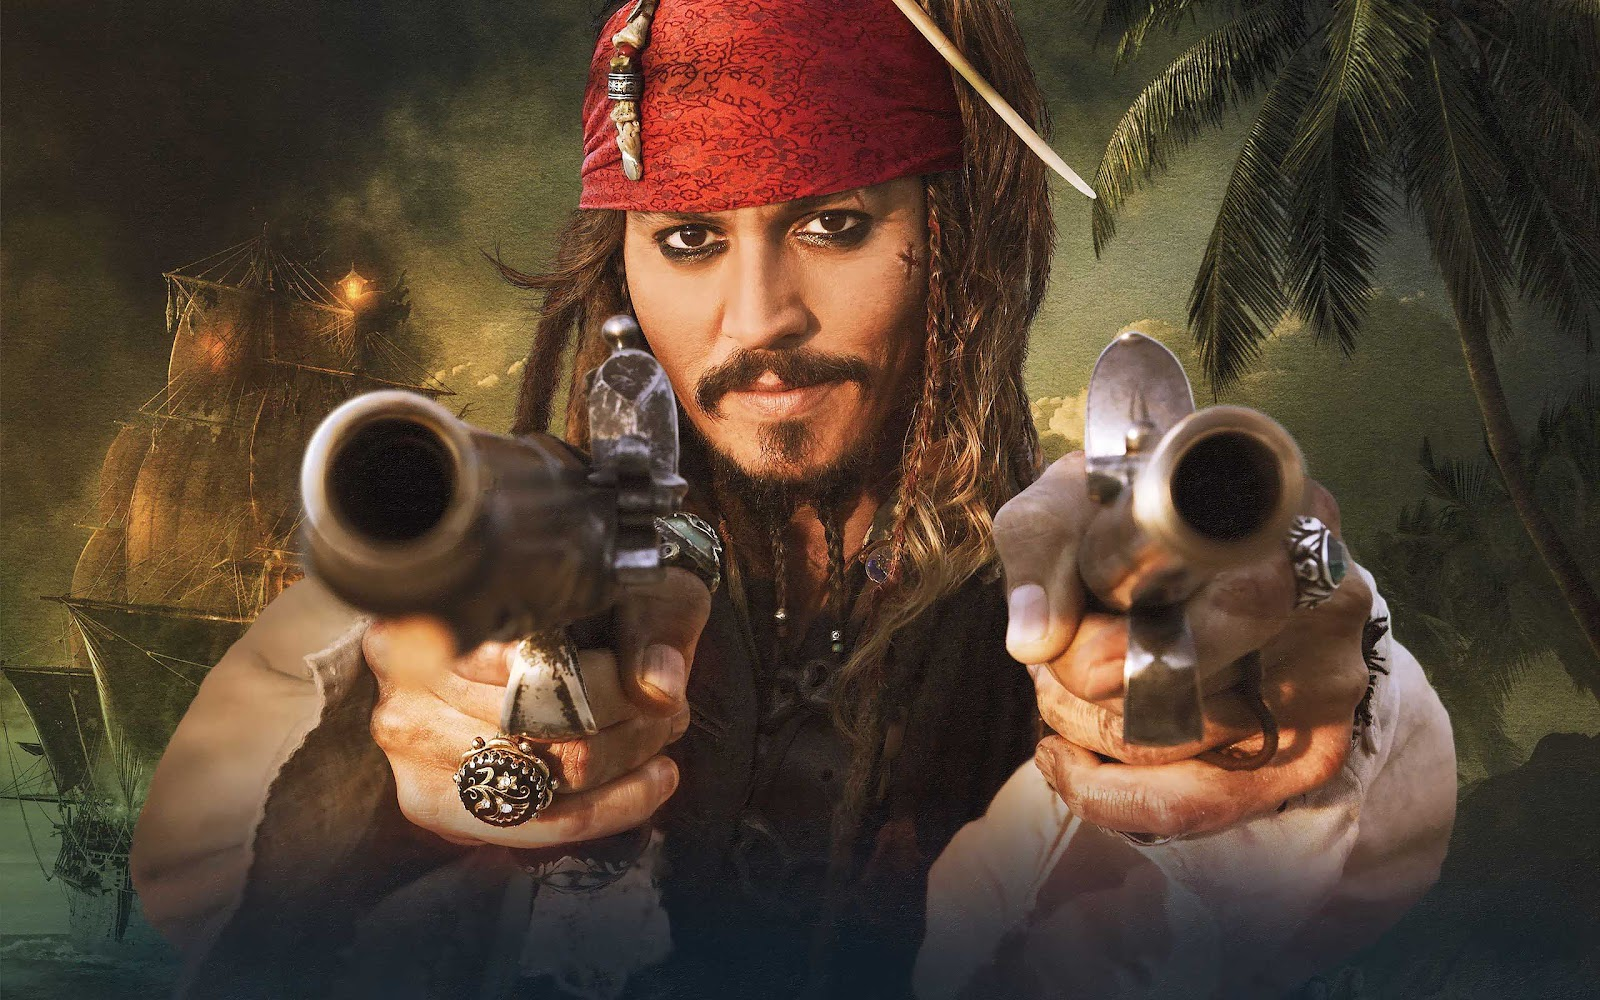 99walls johnny depp in pirates of the caribbean wallpapers - Pirates of the caribbean images hd ...